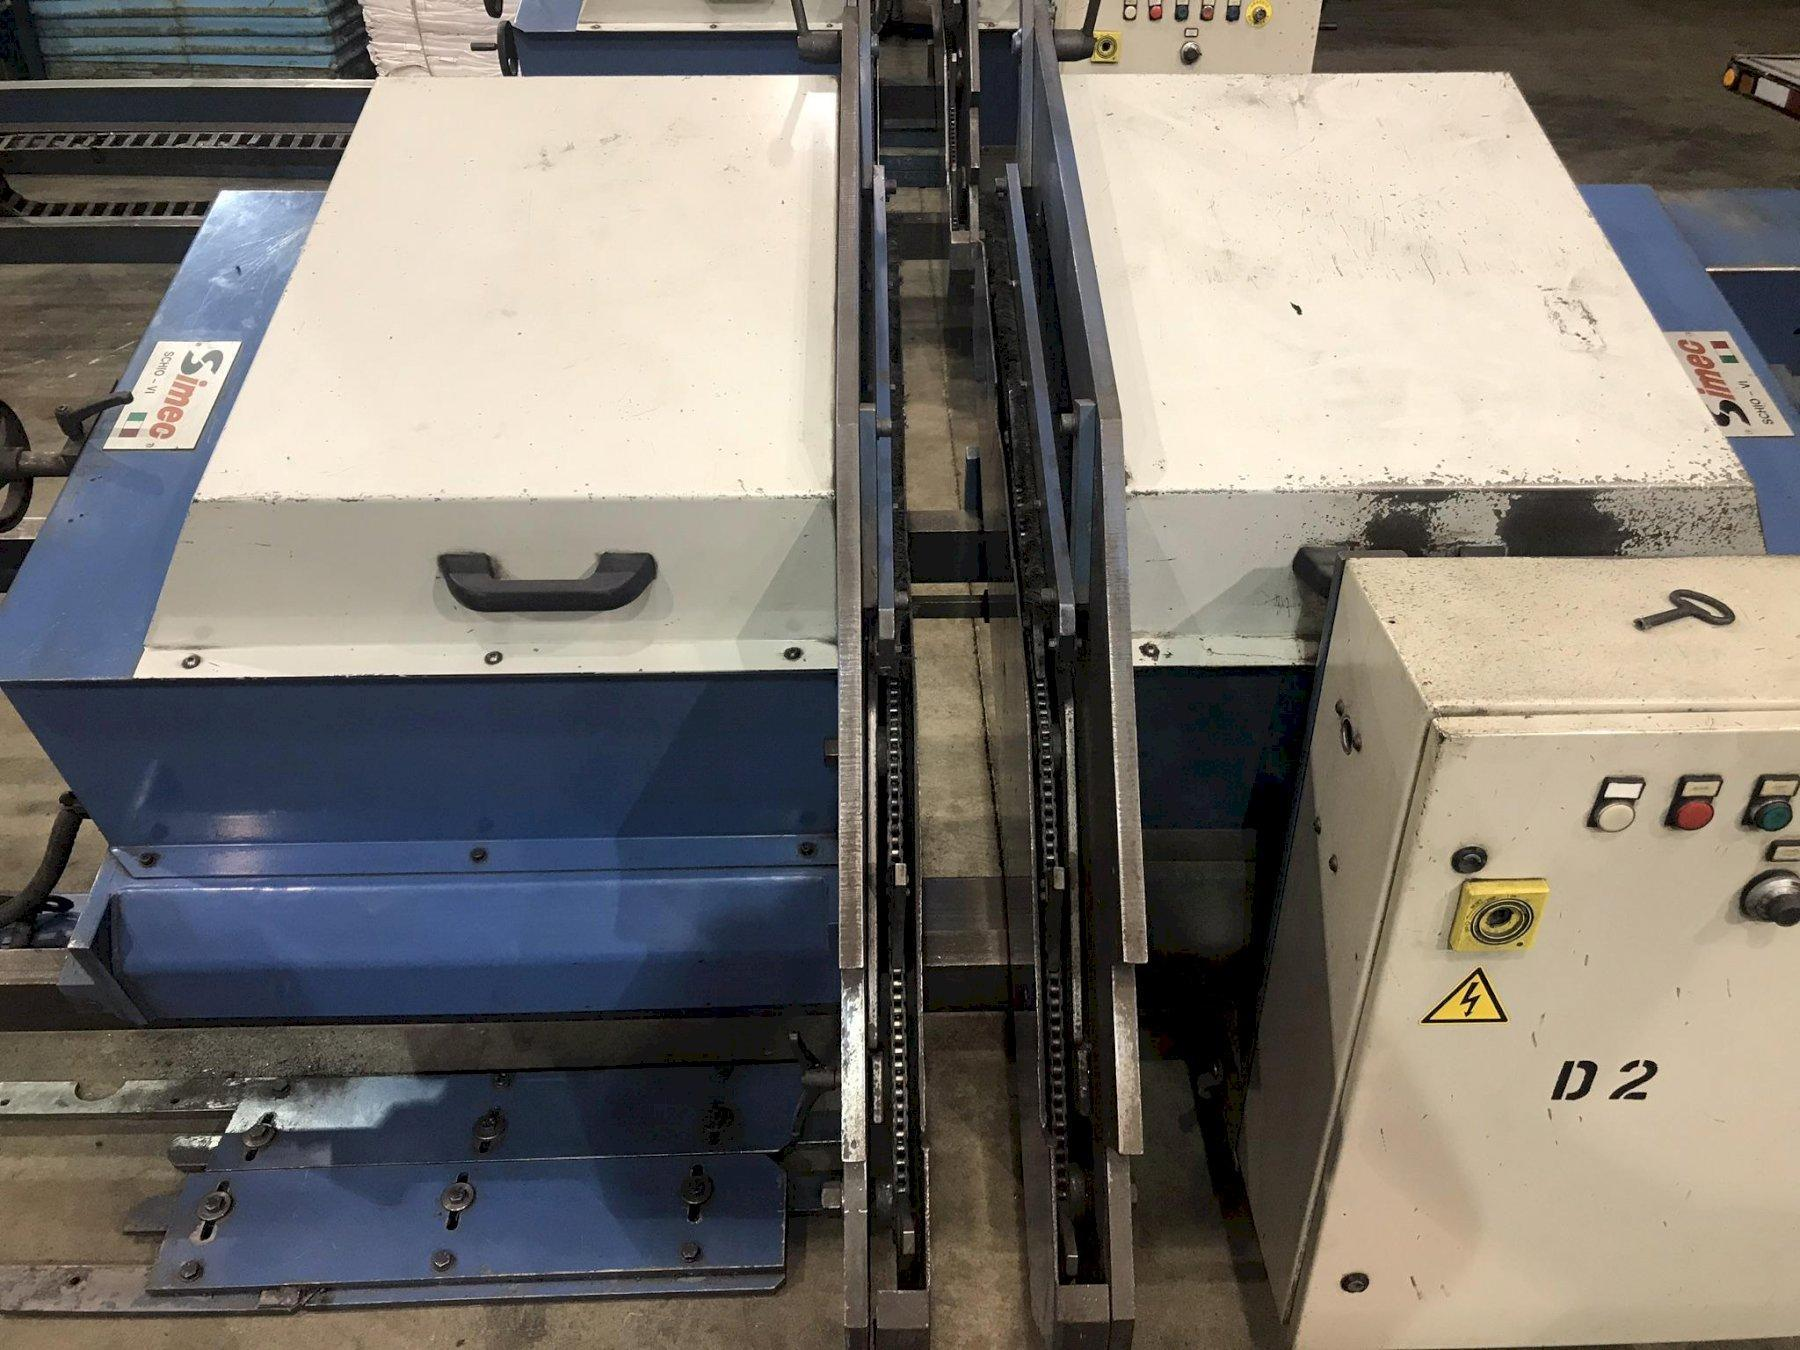 "USED SIMEC ADJUSTABLE LENGTH 4"" WIRE BRUSH DEBURRING MACHINE, MODEL SB3000S, Stock No. 10685, Year 2002"